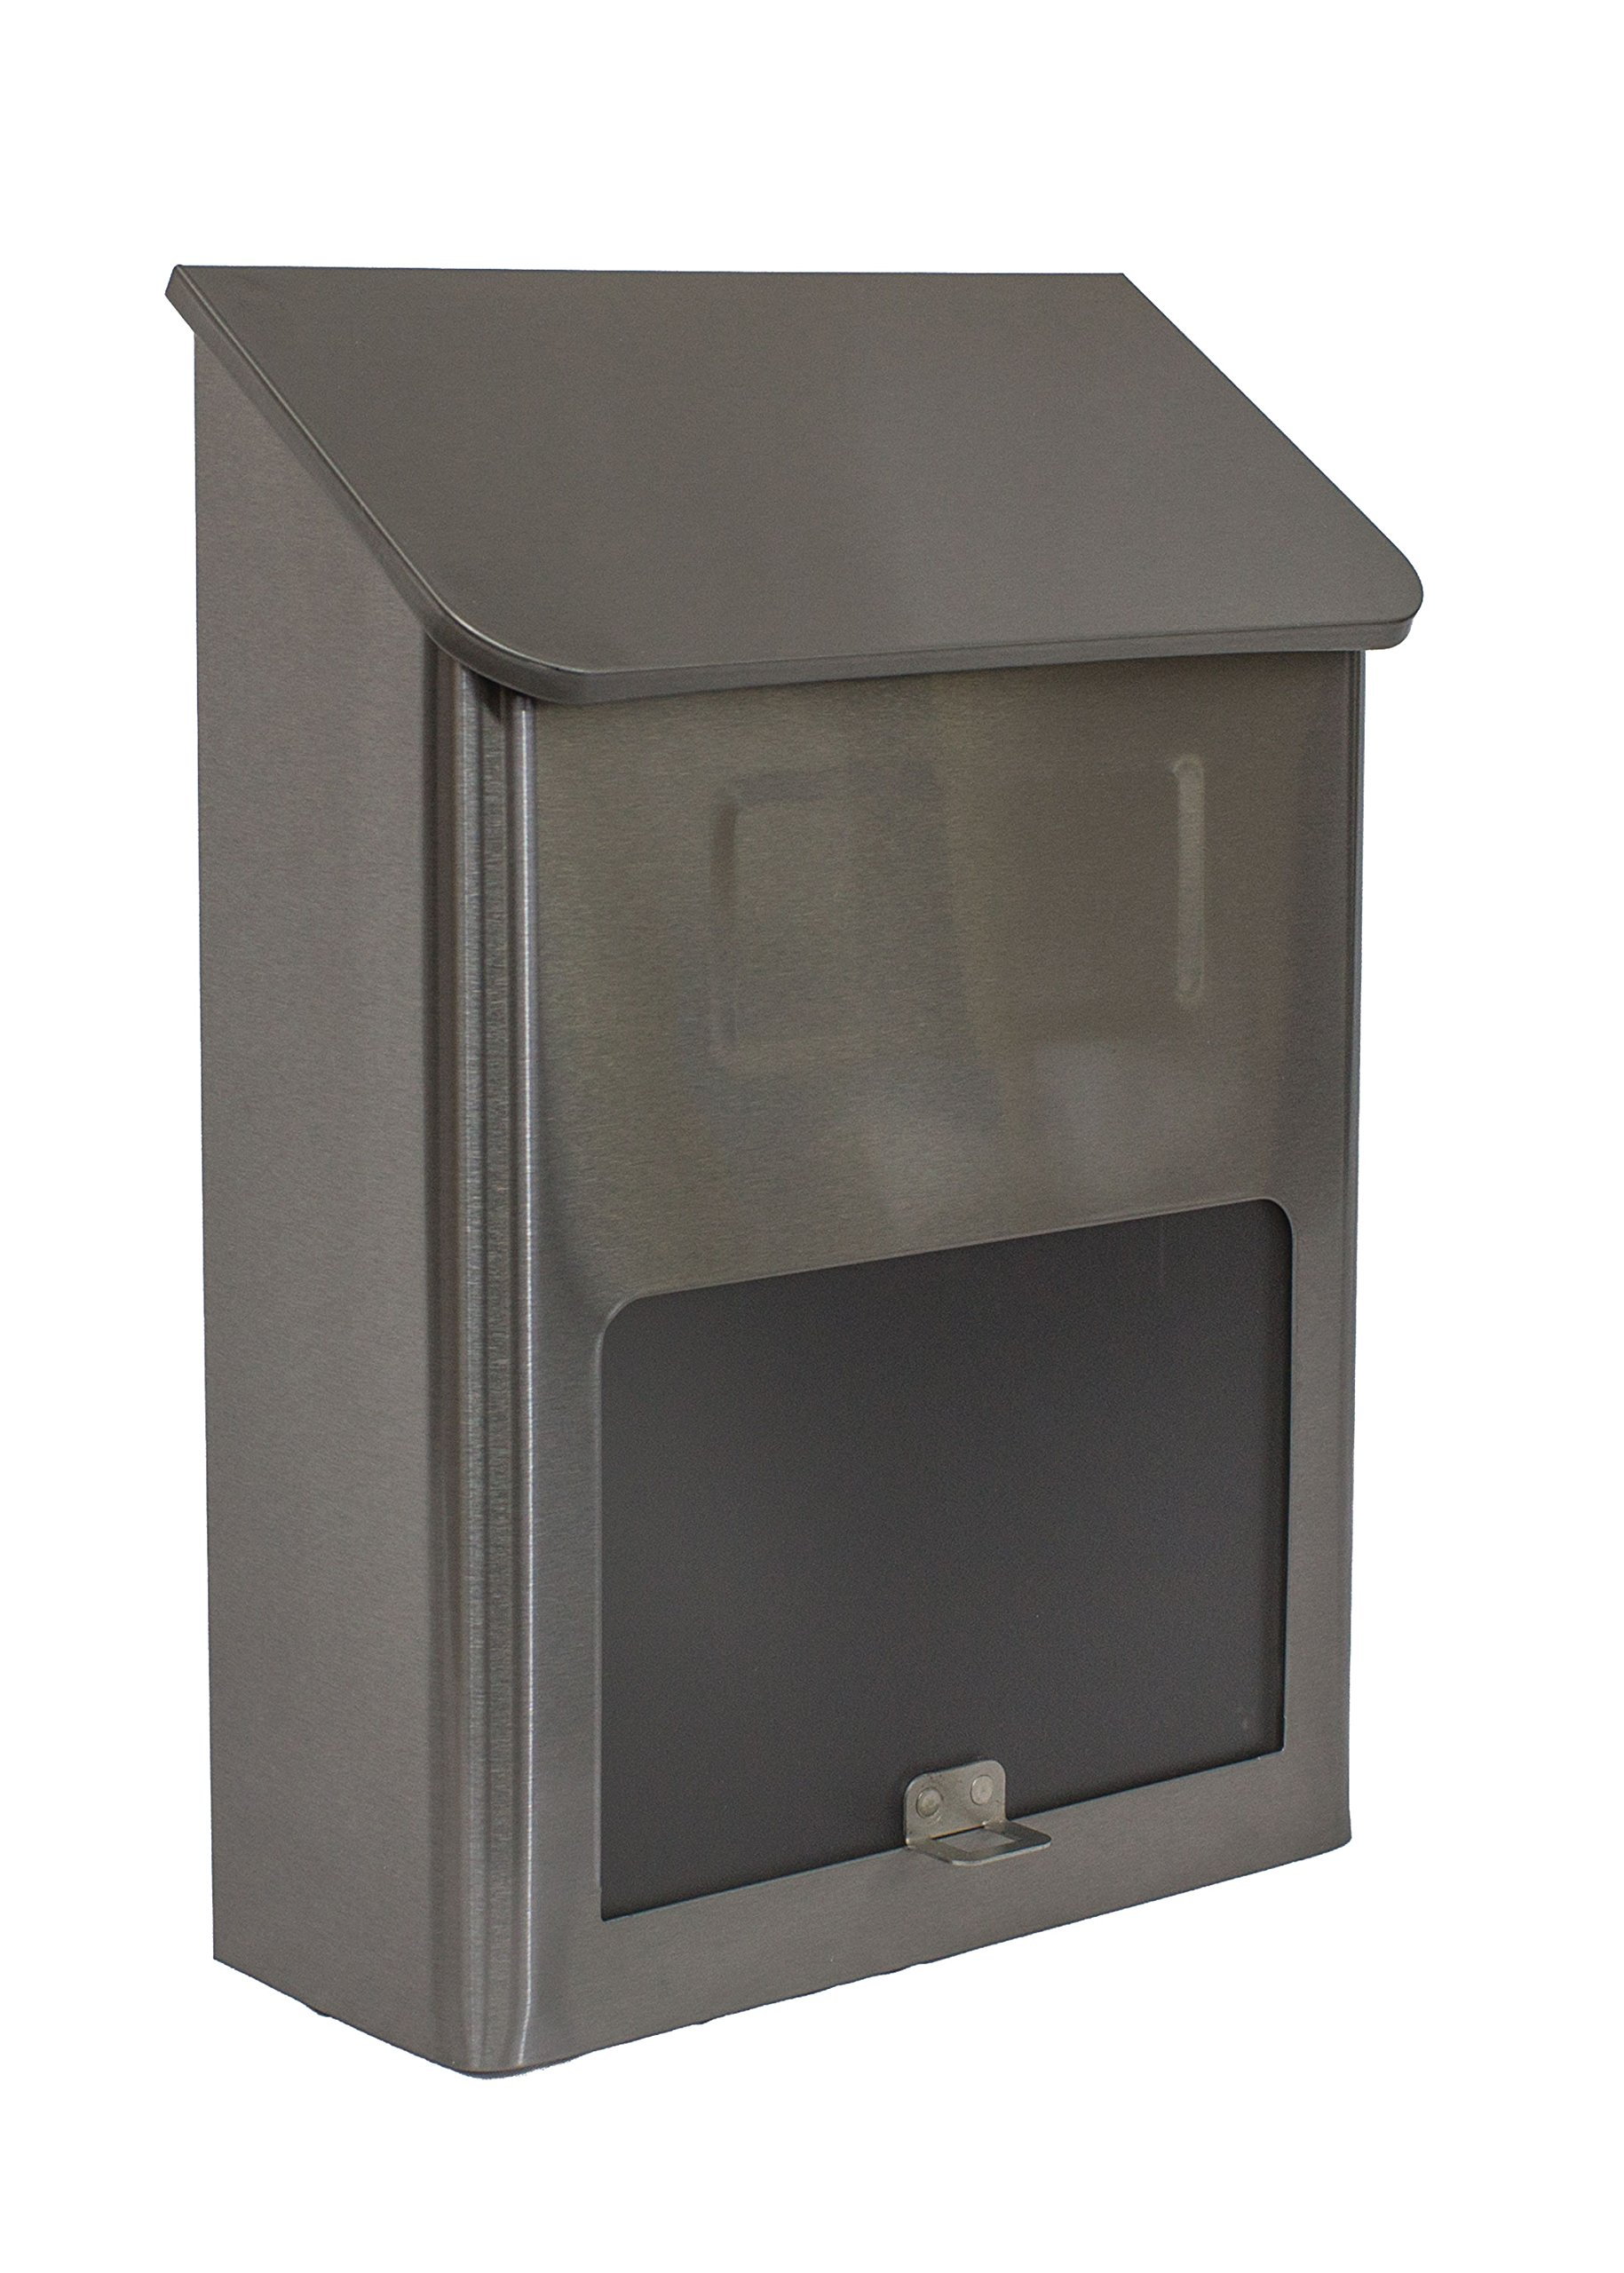 Qualarc WF-L002 Metros Rectangular Stainless Steel Wall Mount Mailbox with Window, Silver/Black